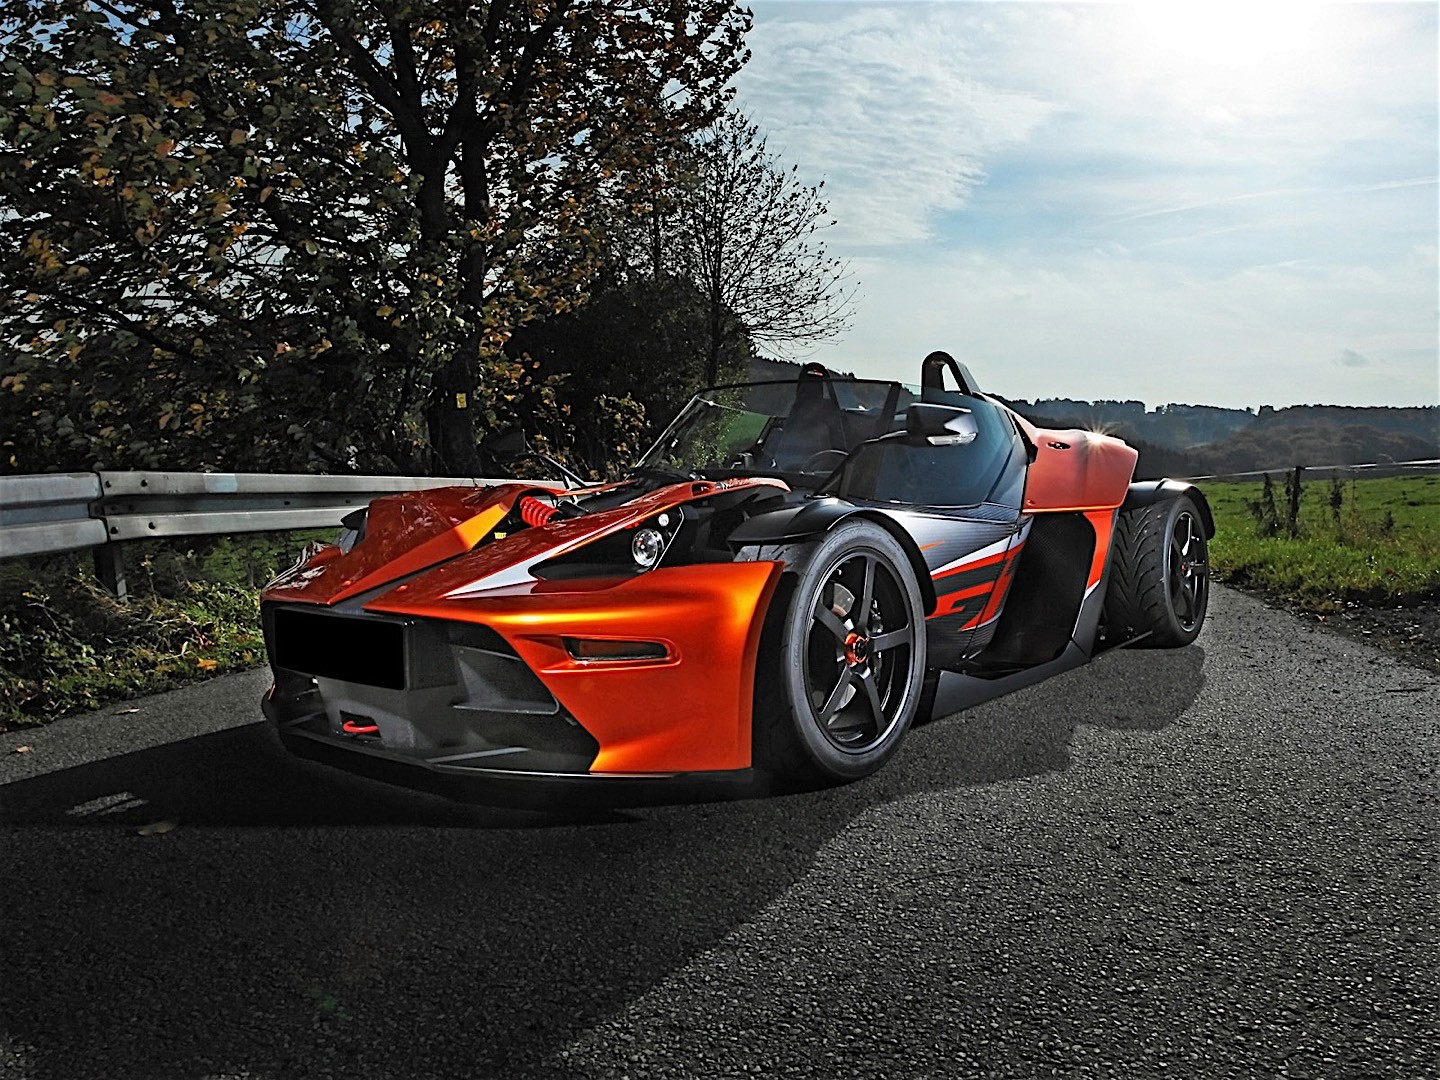 ktm x bow gt 2013 2014 2015 2016 autoevolution. Black Bedroom Furniture Sets. Home Design Ideas